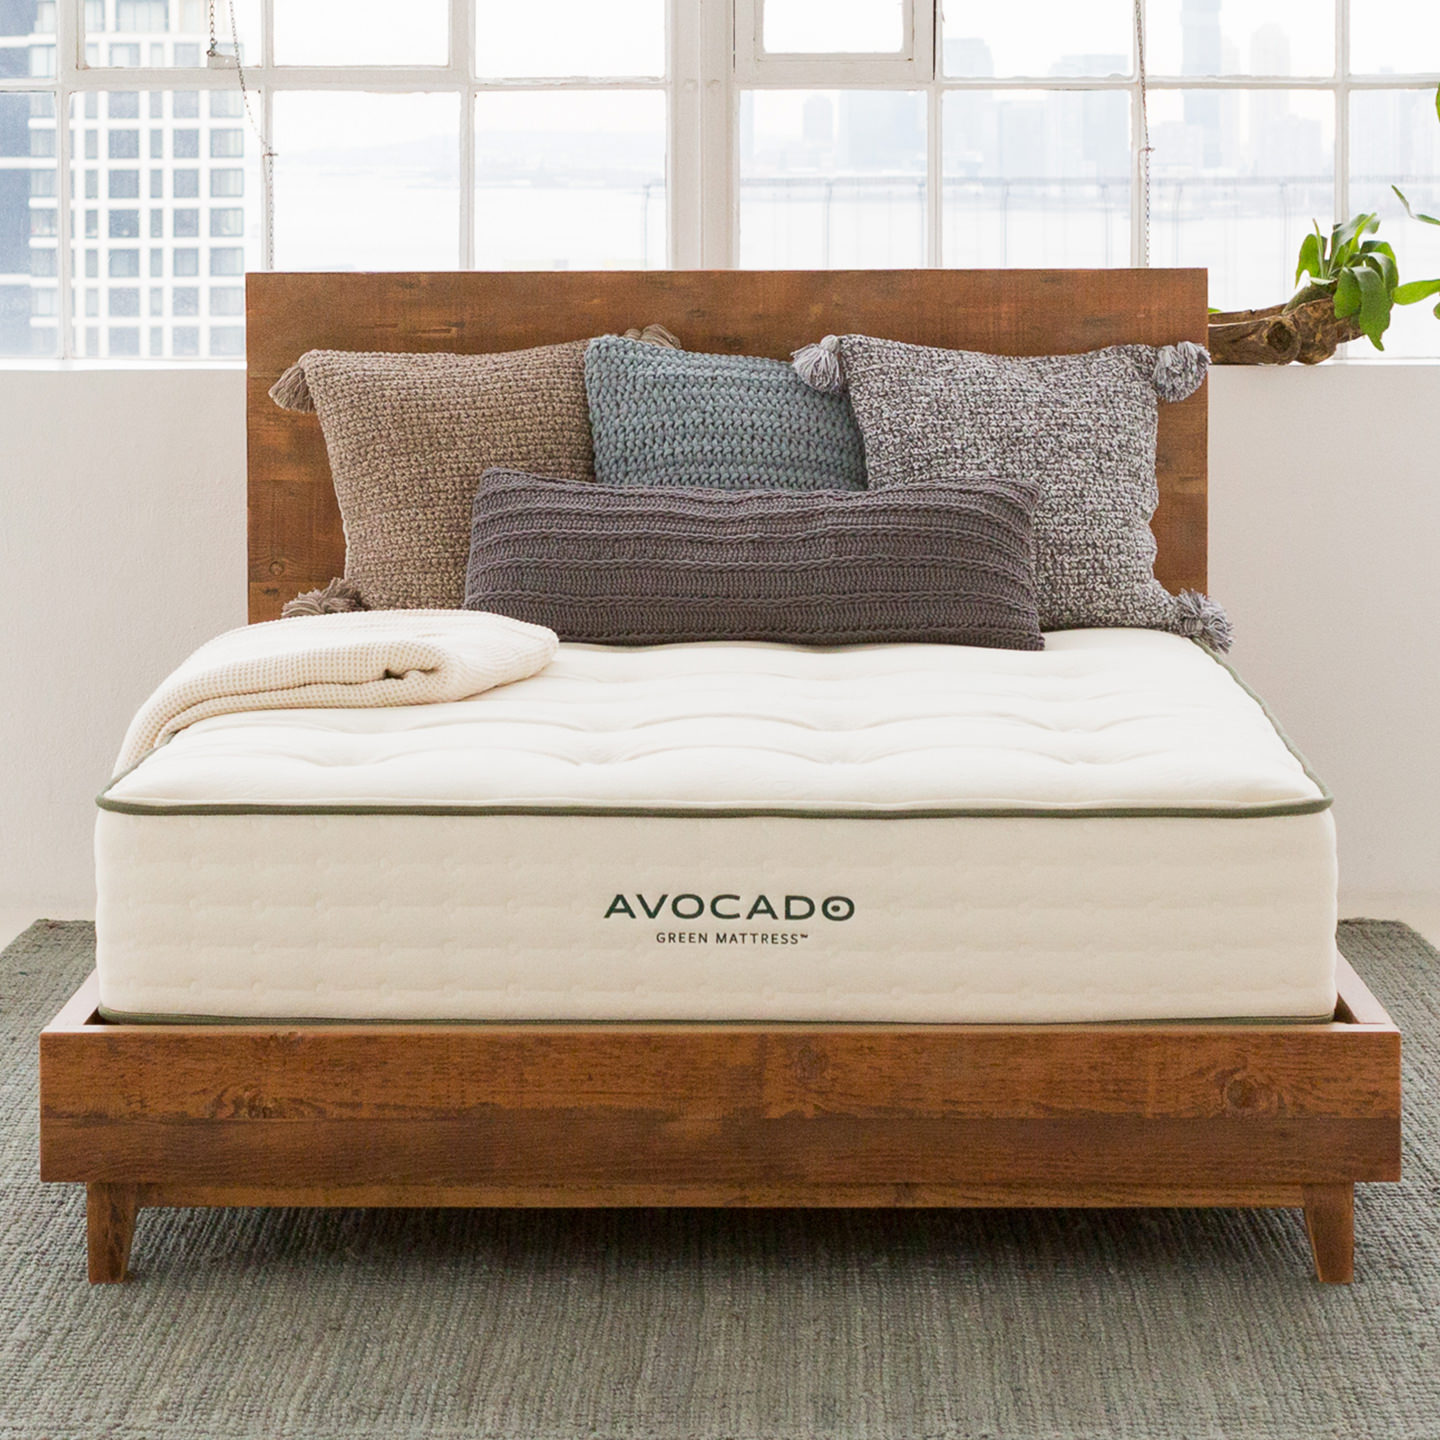 Reclaimed Wood Non toxic Bed Frame